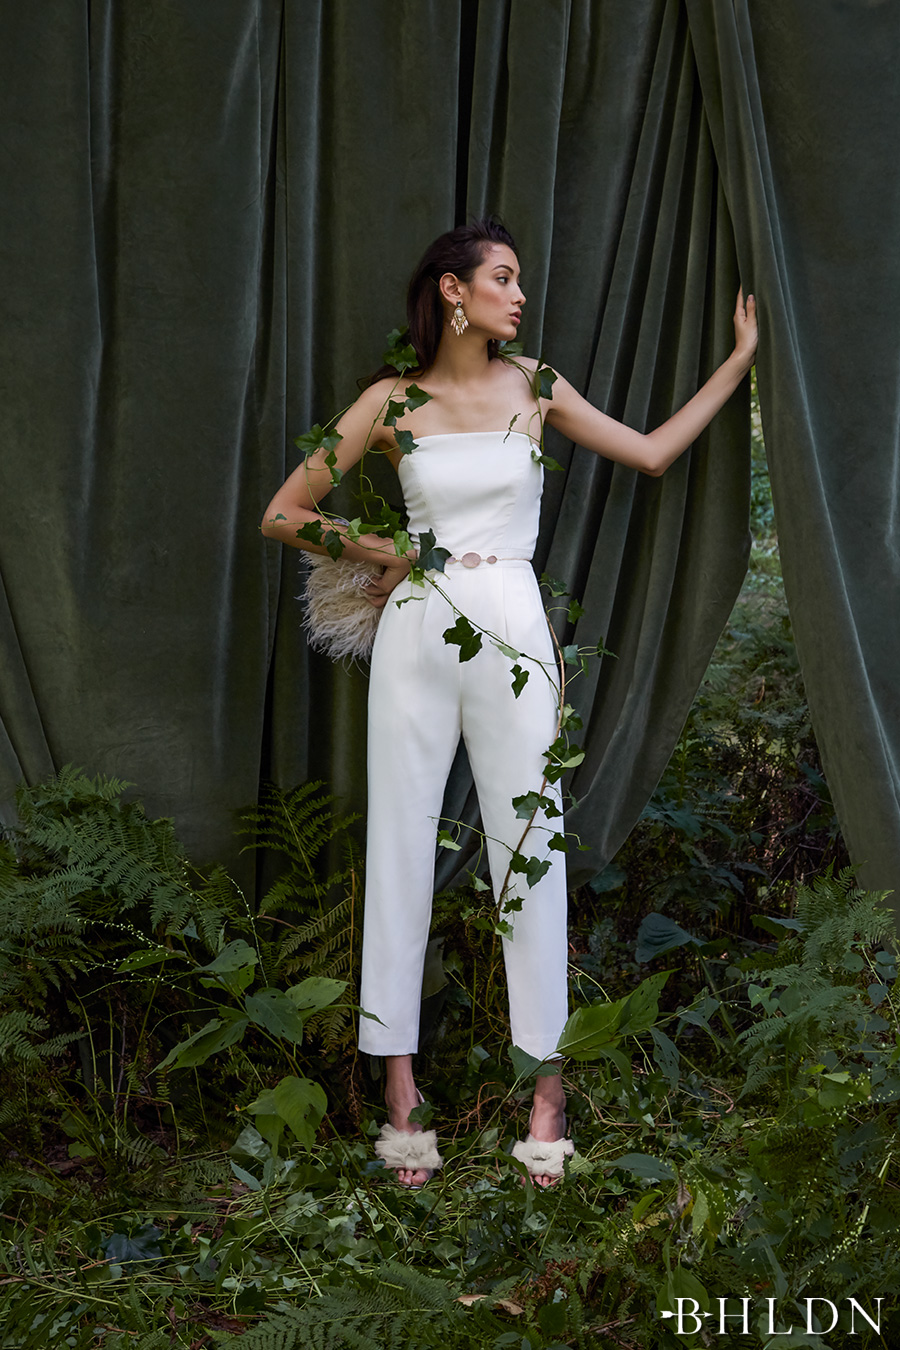 bhldn fall 2016 bridal strapless straight across neckline simple clean sophiscated jumpsuit wedding dress (langley jumpsuit) mv